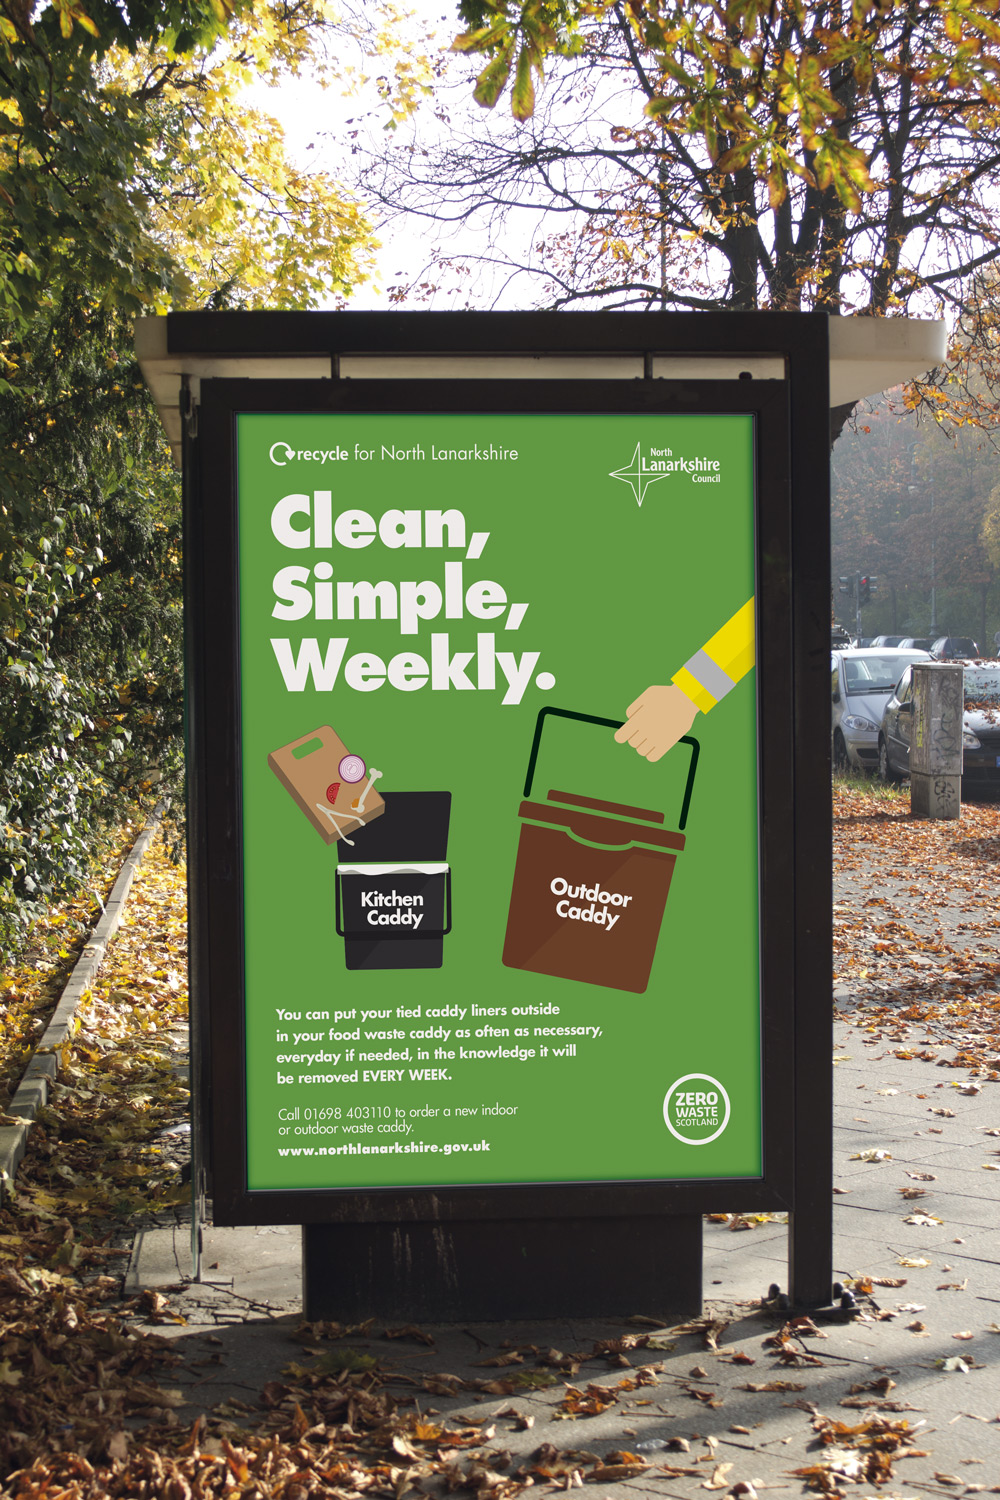 Adshel-Poster-Local-Authorities-Recycling-Food-Waste-Scotland-get-it-sorted.jpg